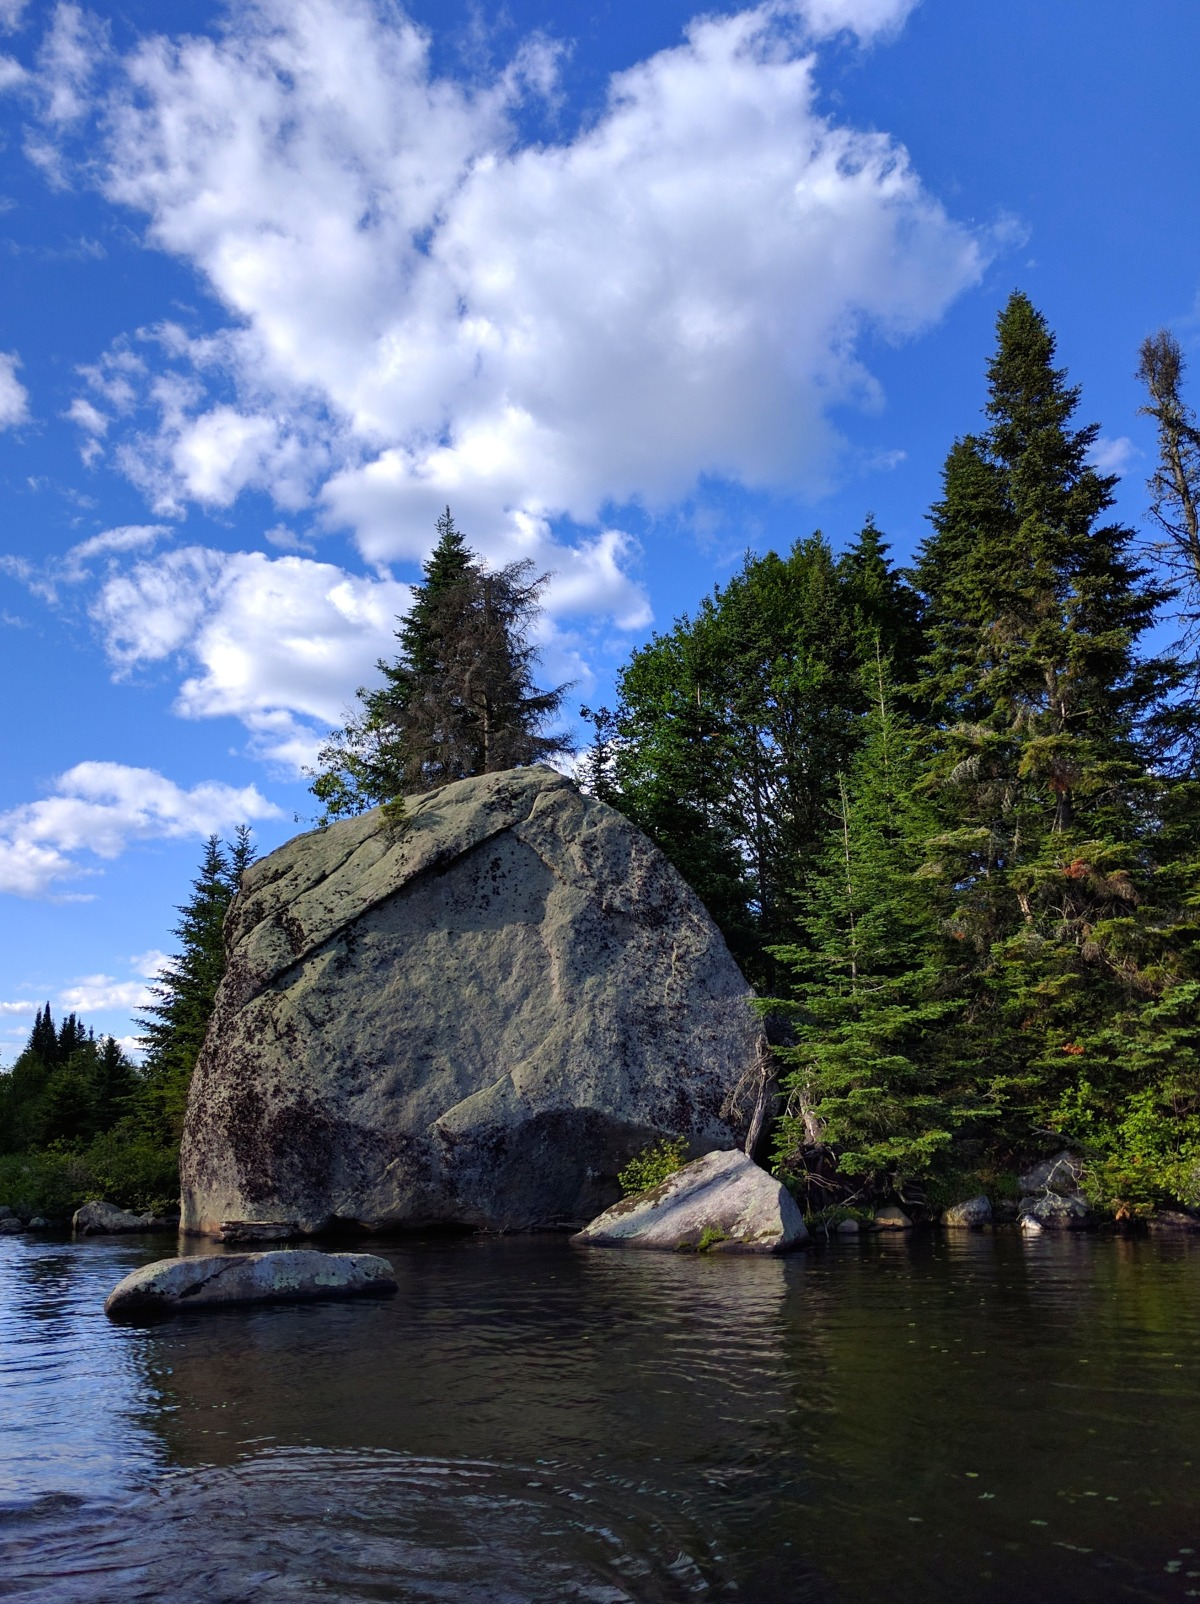 At the end of the lake you'll find this amazing rock formation